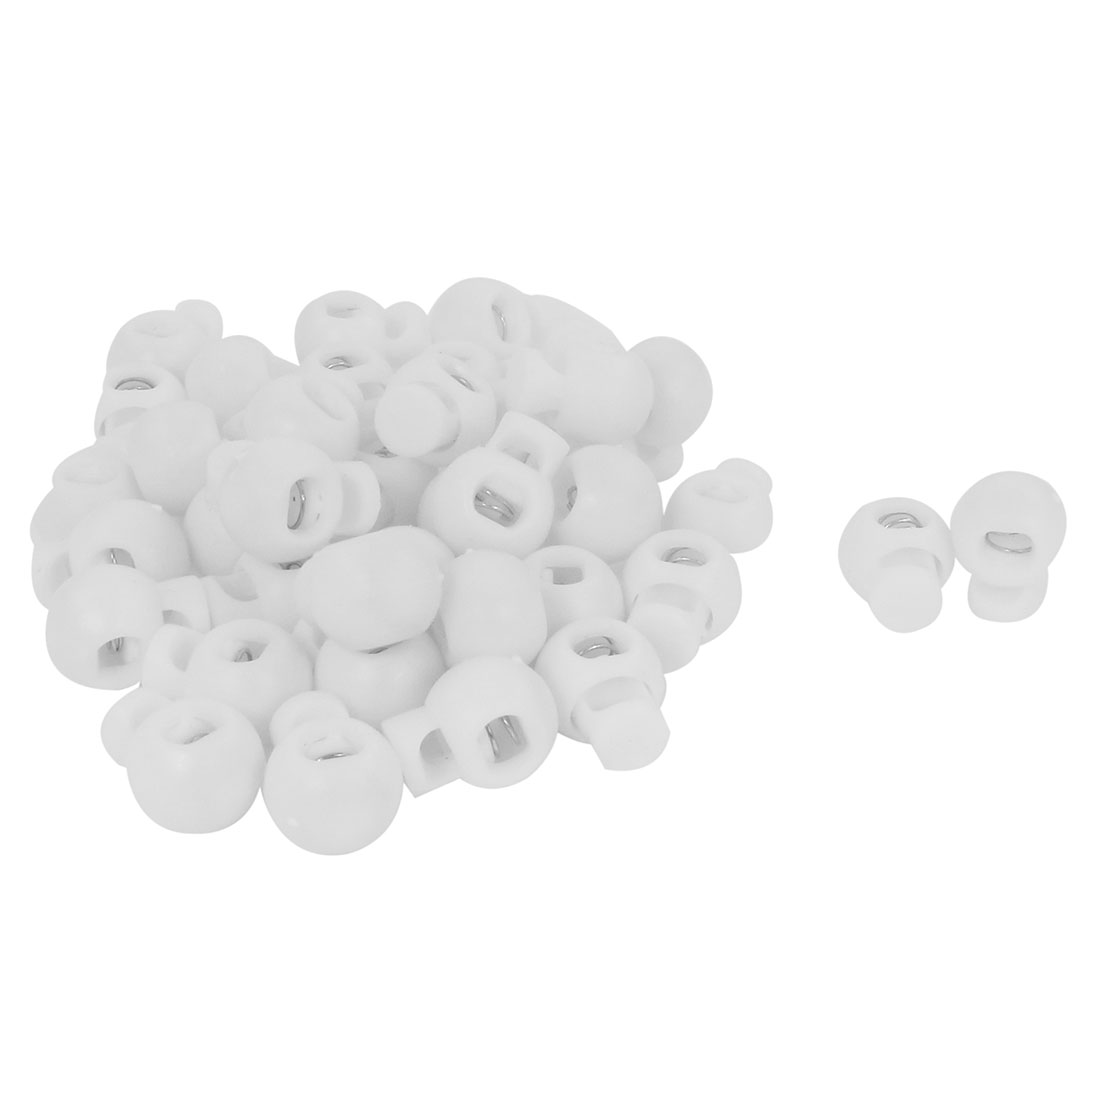 40 Pcs Spring Loaded White Plastic Round Lanyard Cord Locks 5mm Diameter